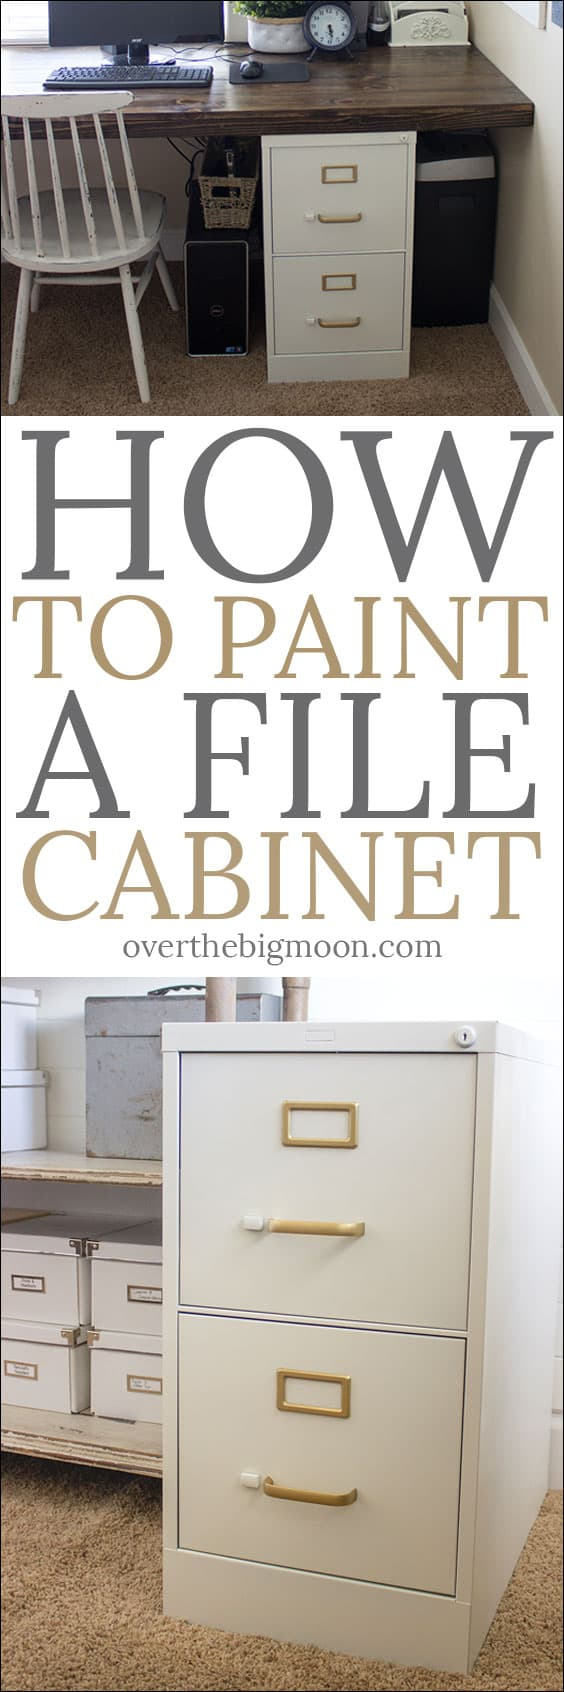 How to Paint a File Cabinet -- this tutorial shares the process and products I used to paint an ugly file cabinet into something that isn't such an eye sore! From overthebigmoon.com!